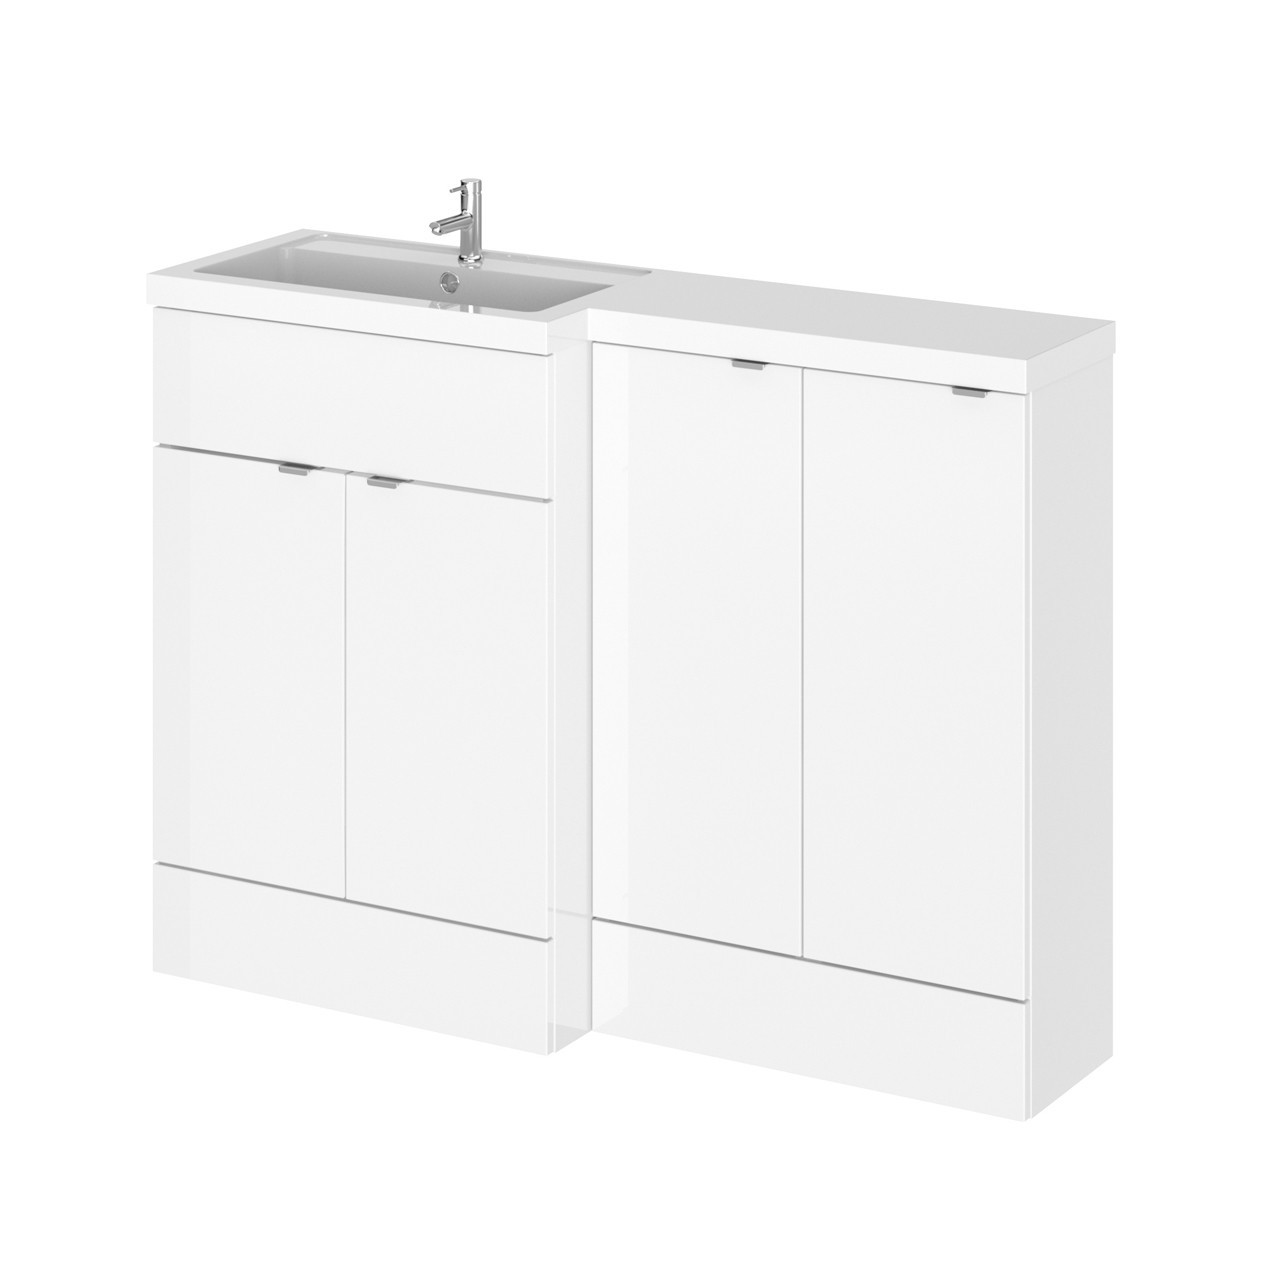 Hudson Reed Gloss White 1200mm Full Depth Combination Vanity & Storage Unit with Left Hand Basin - CBI111